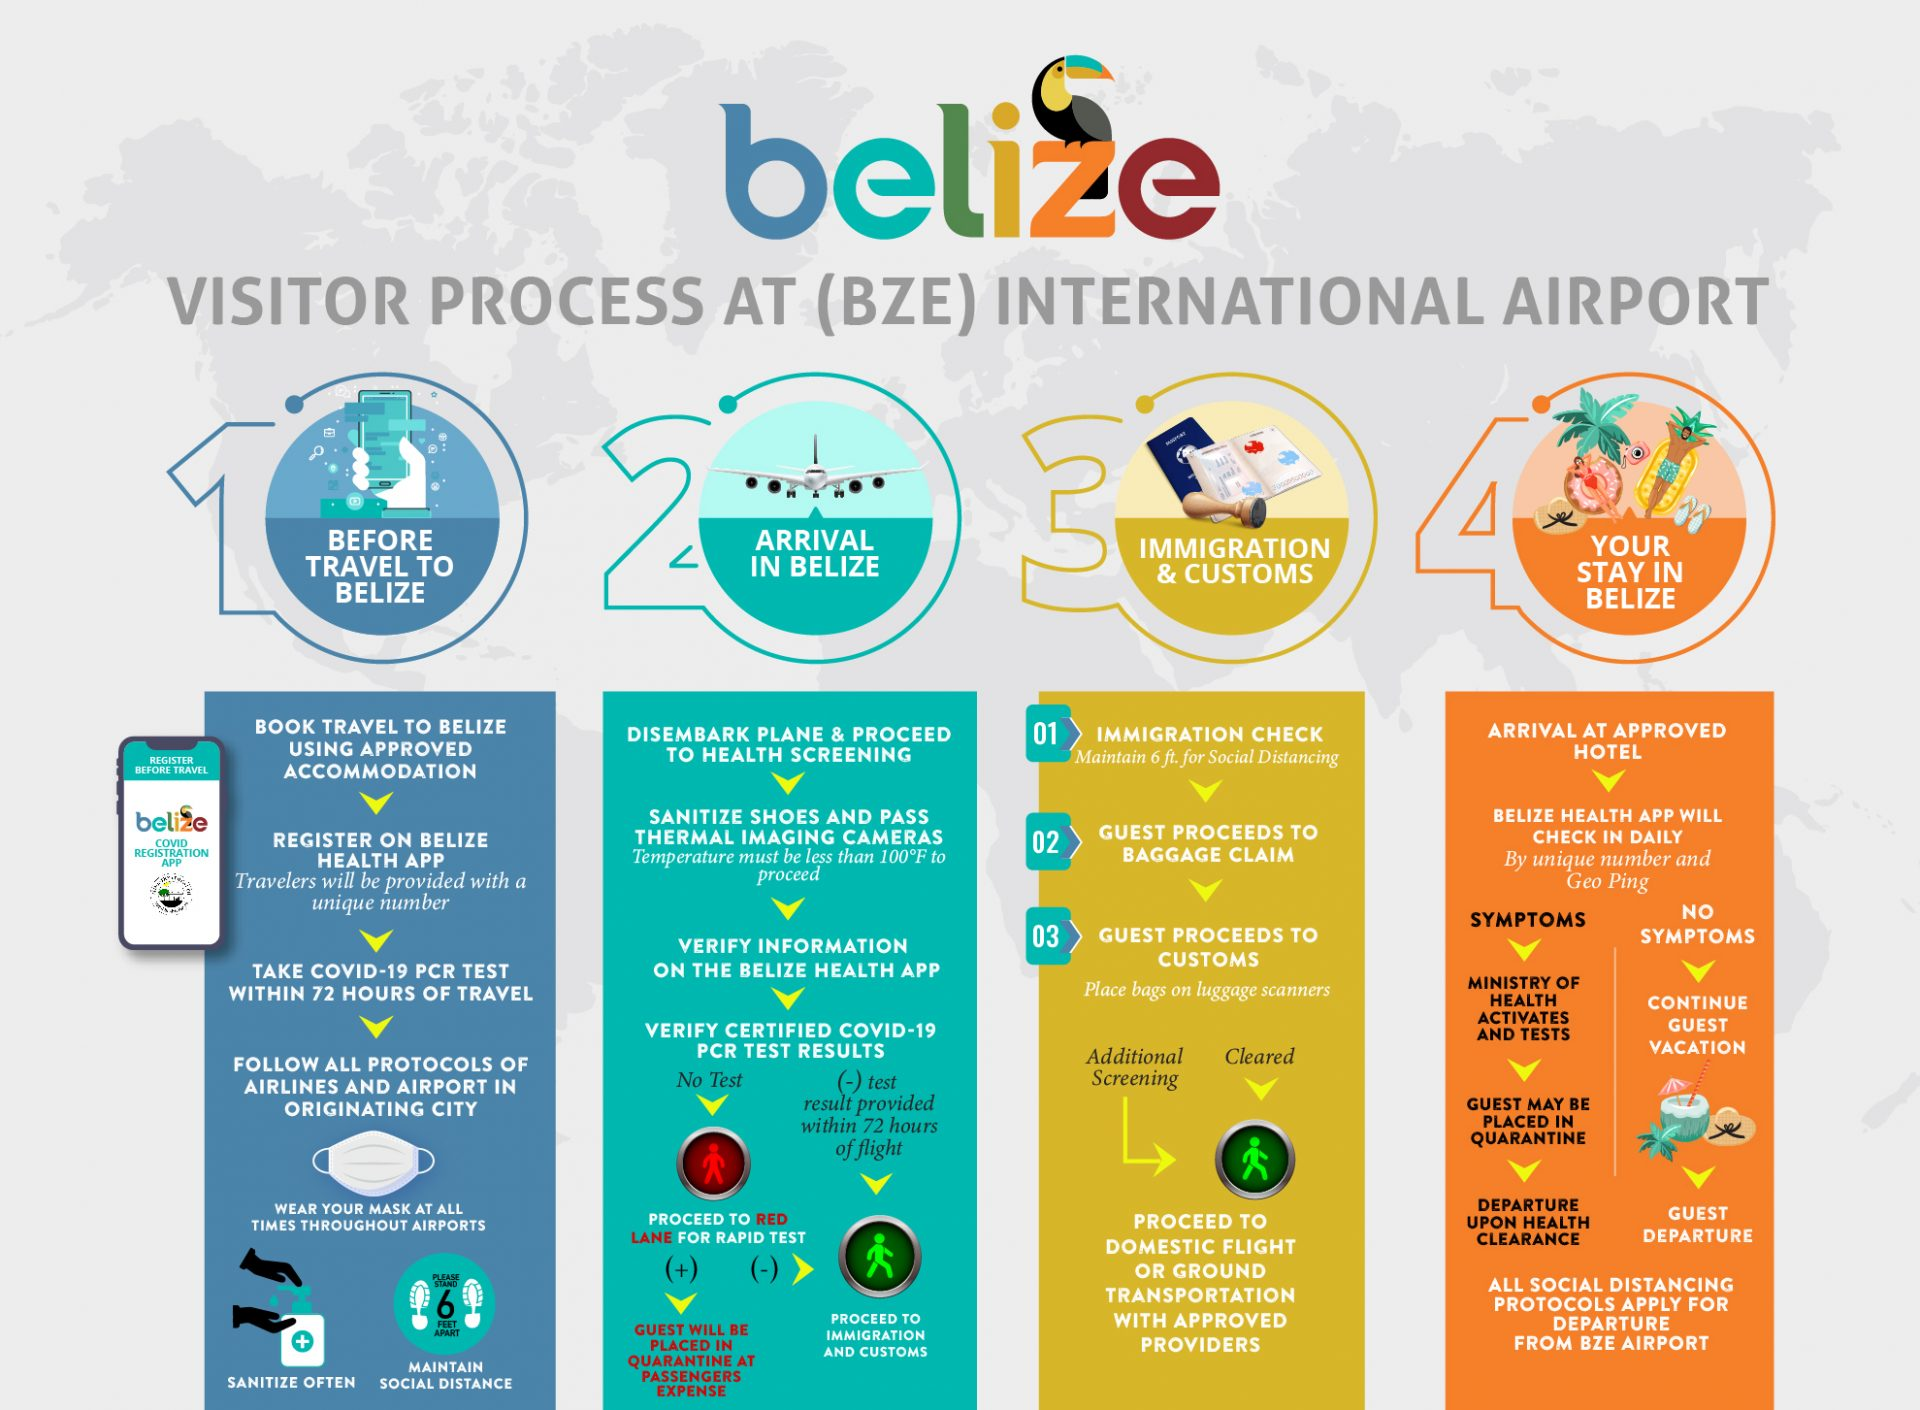 what to expect upon arrival in belize